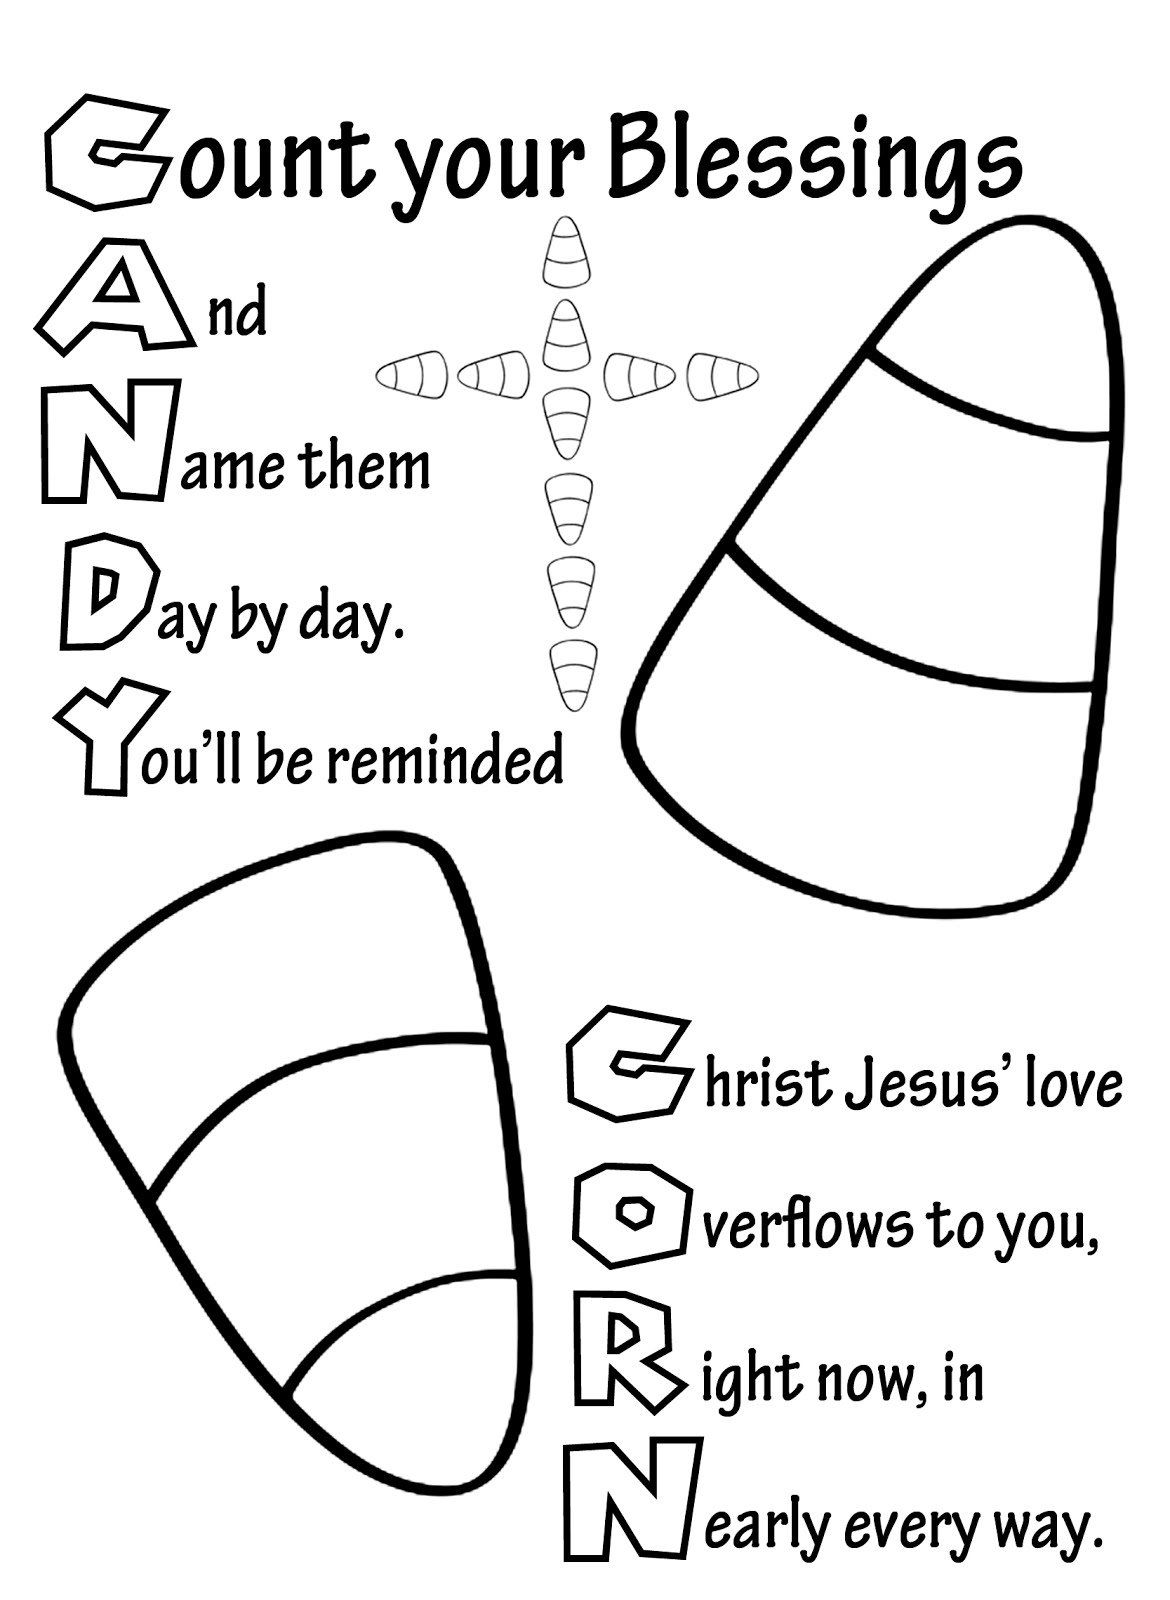 Christian Halloween Coloring Pages Sunday School Activities Childrens Church Crafts Sunday School